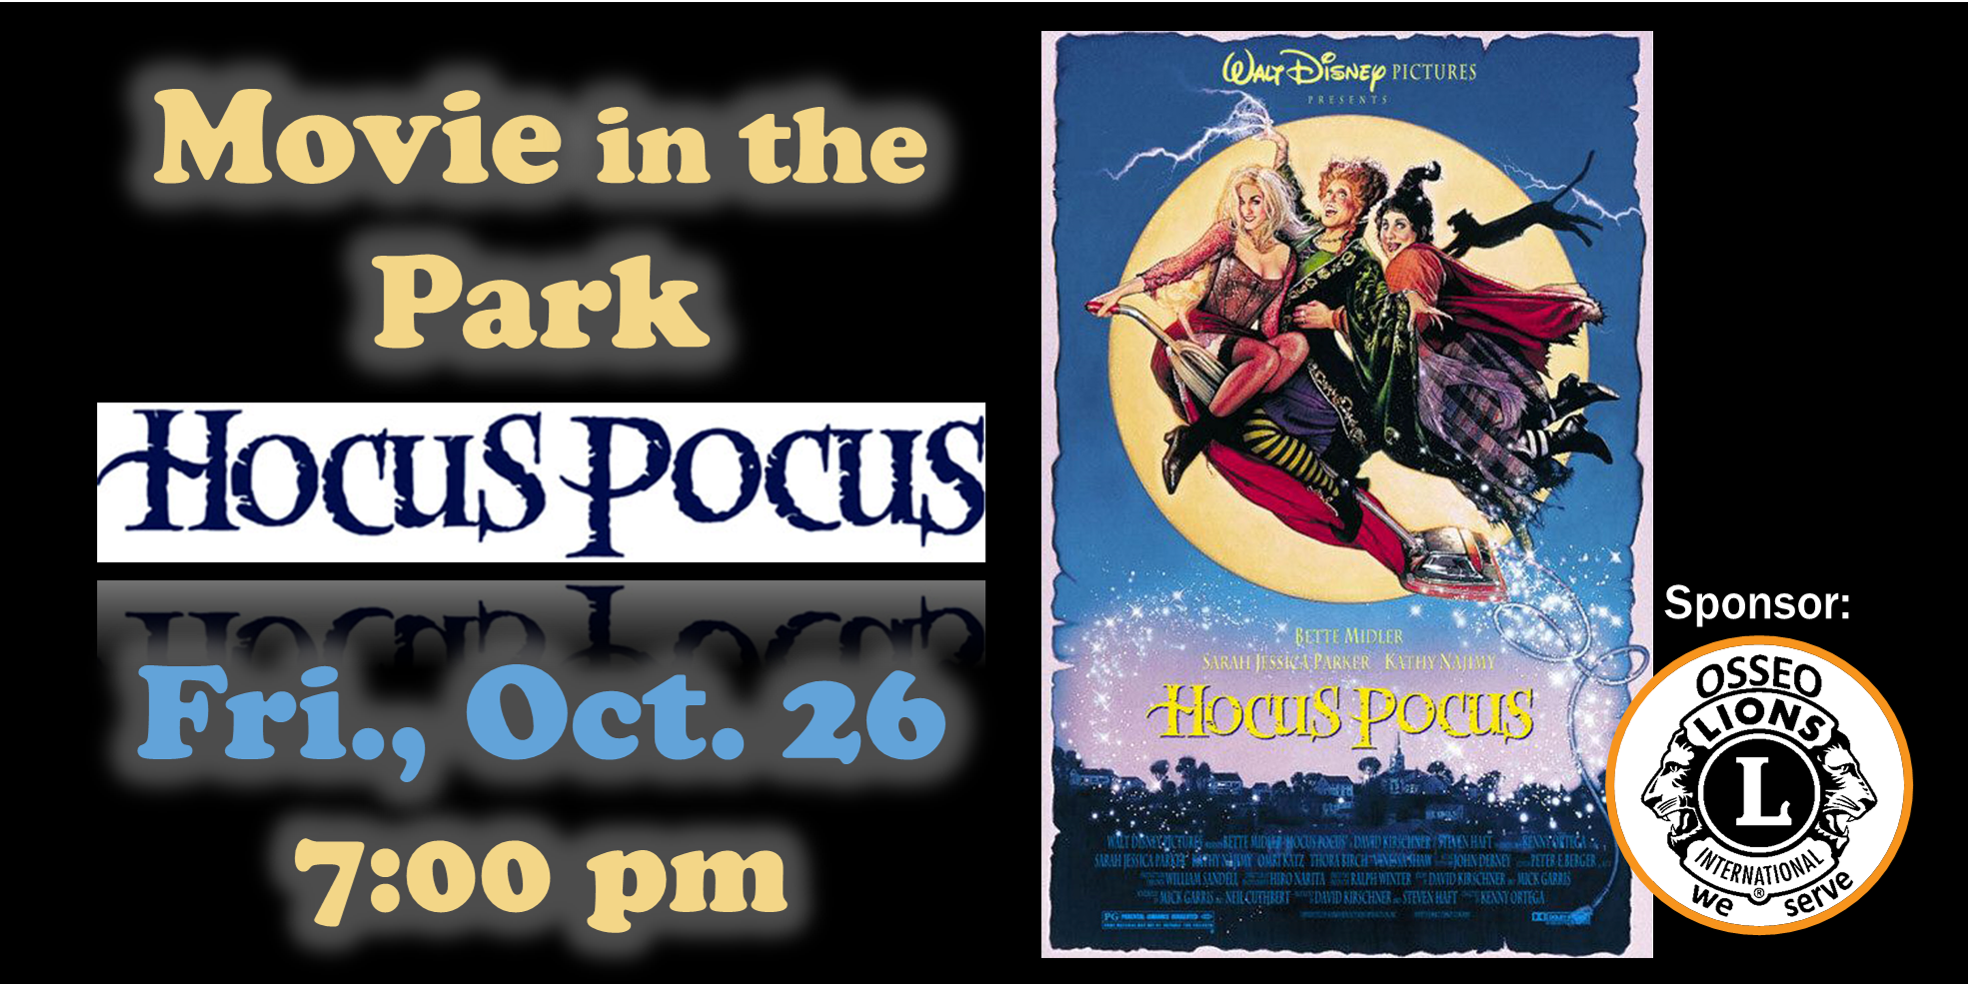 Hocus Pocus Movie in the Park